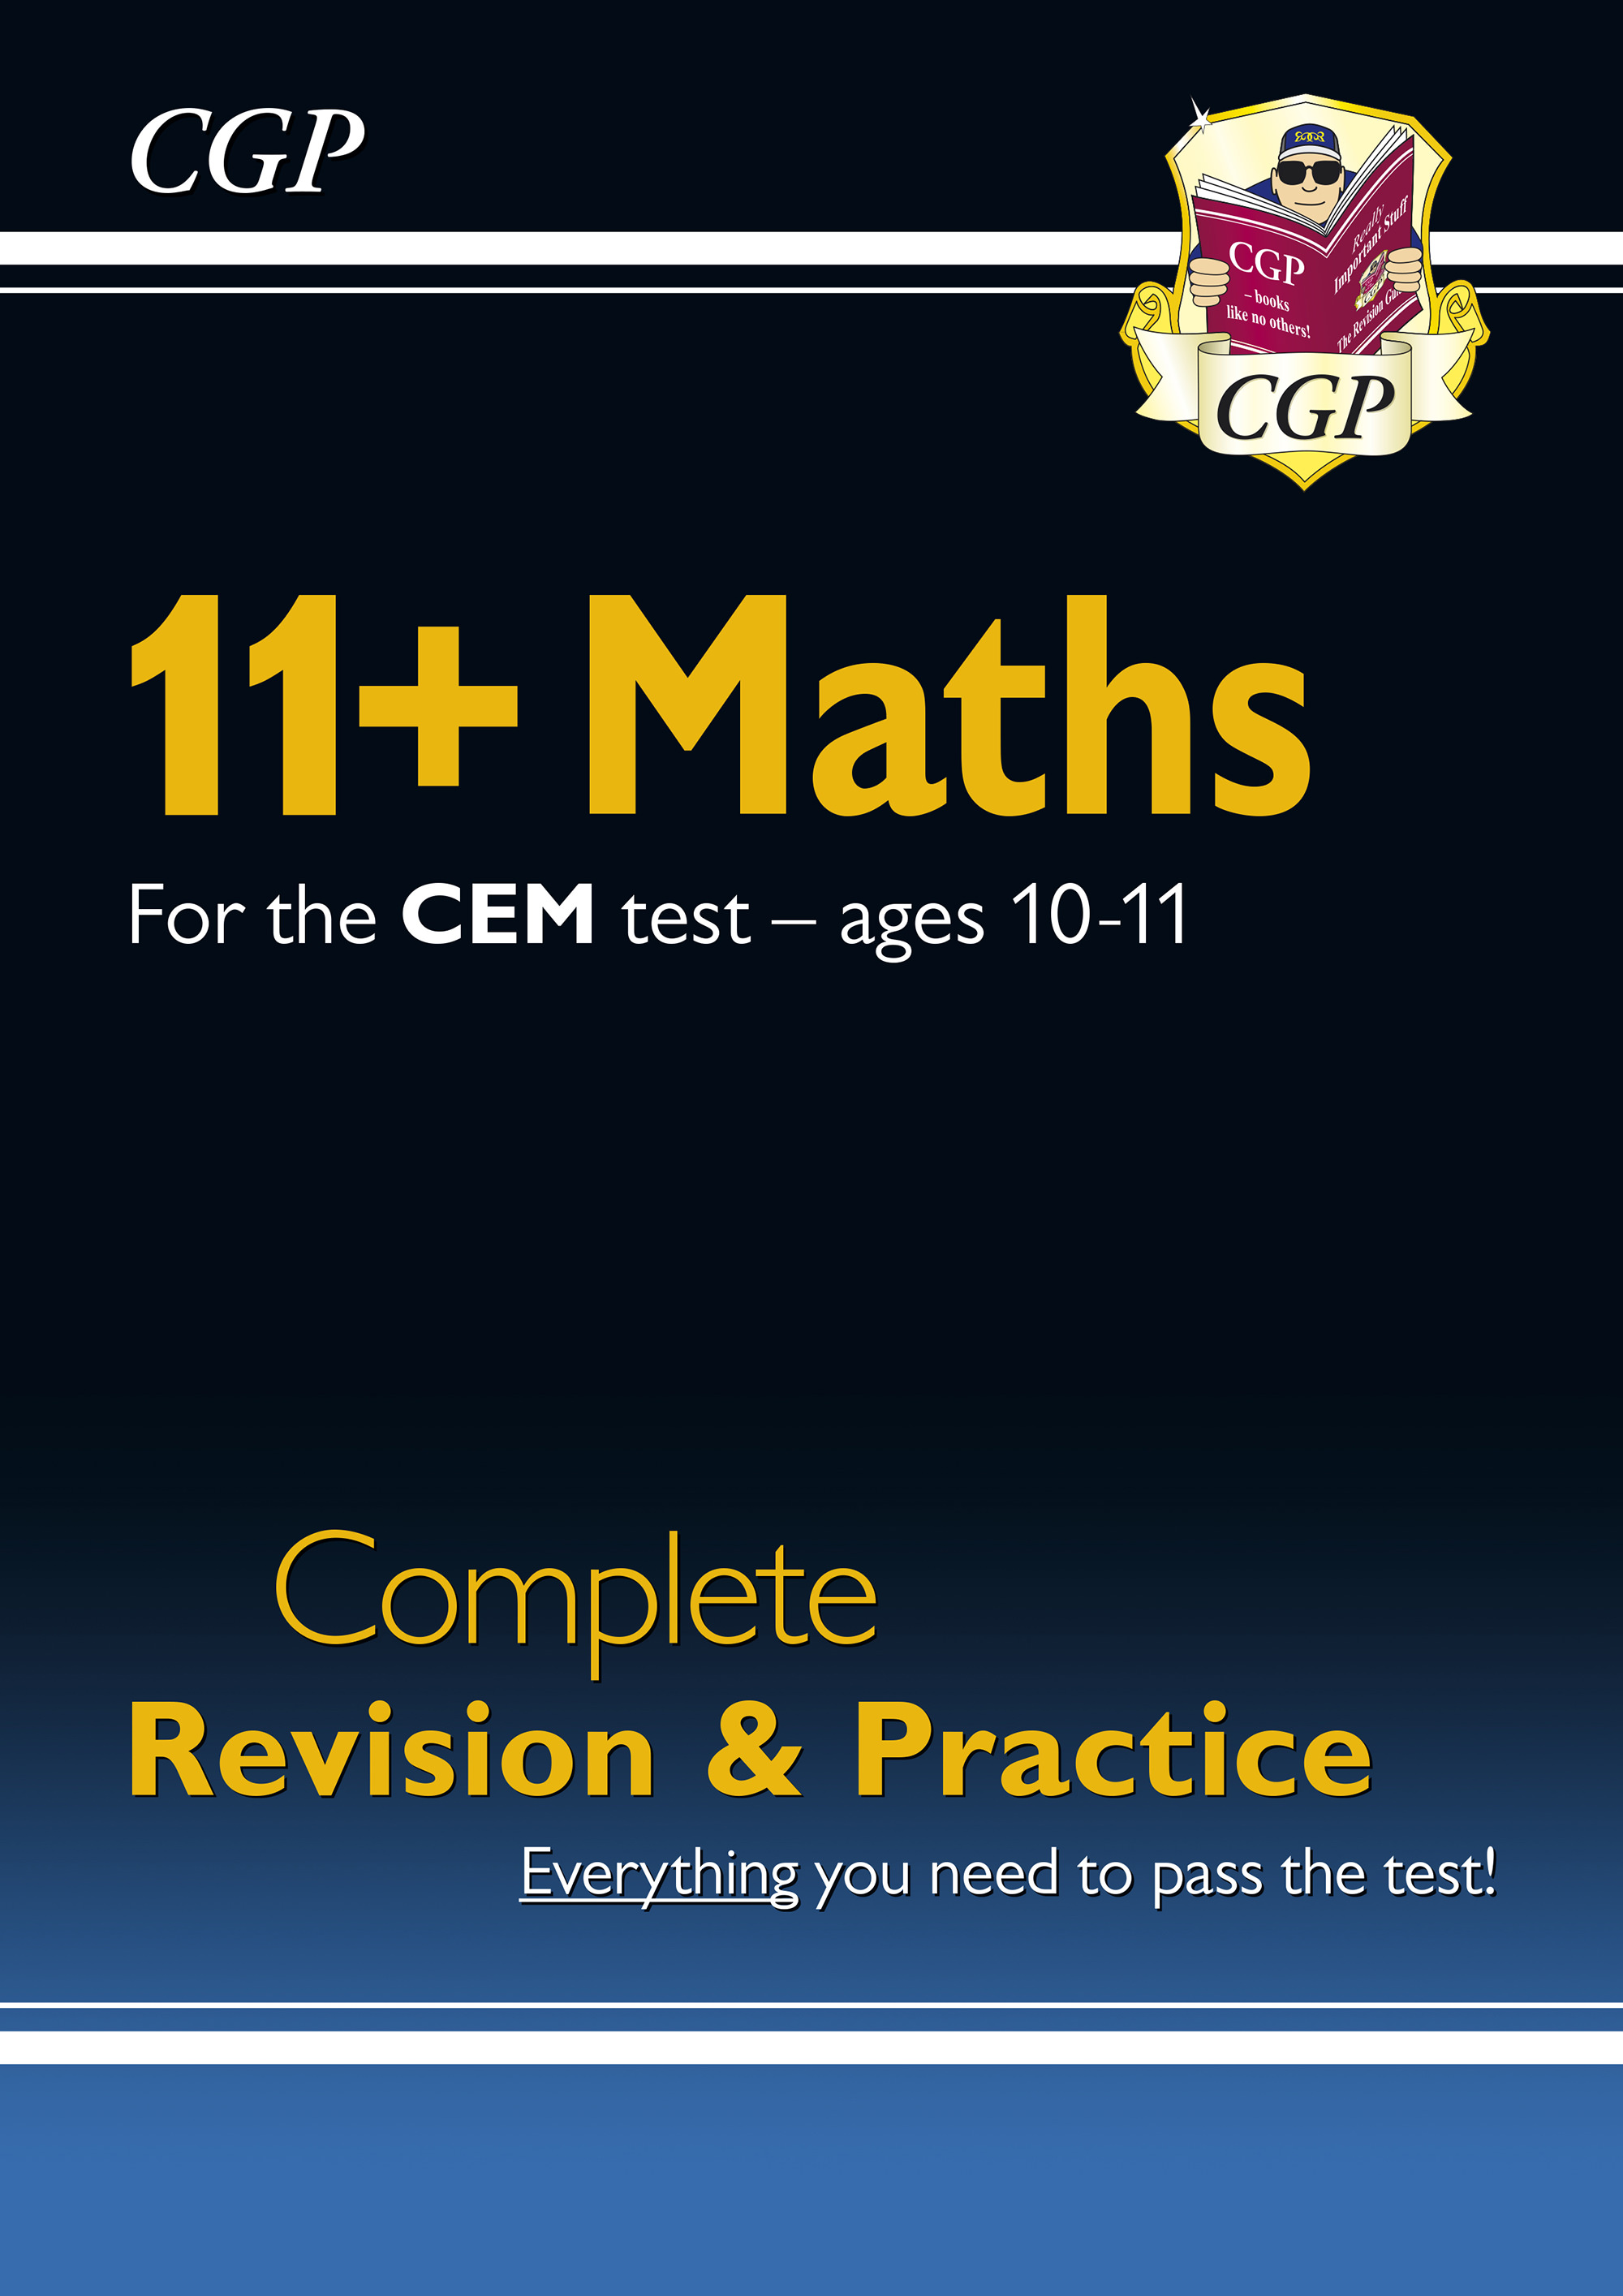 MHSDE1DK - New 11+ CEM Maths Complete Revision and Practice - Ages 10-11 Online Edition